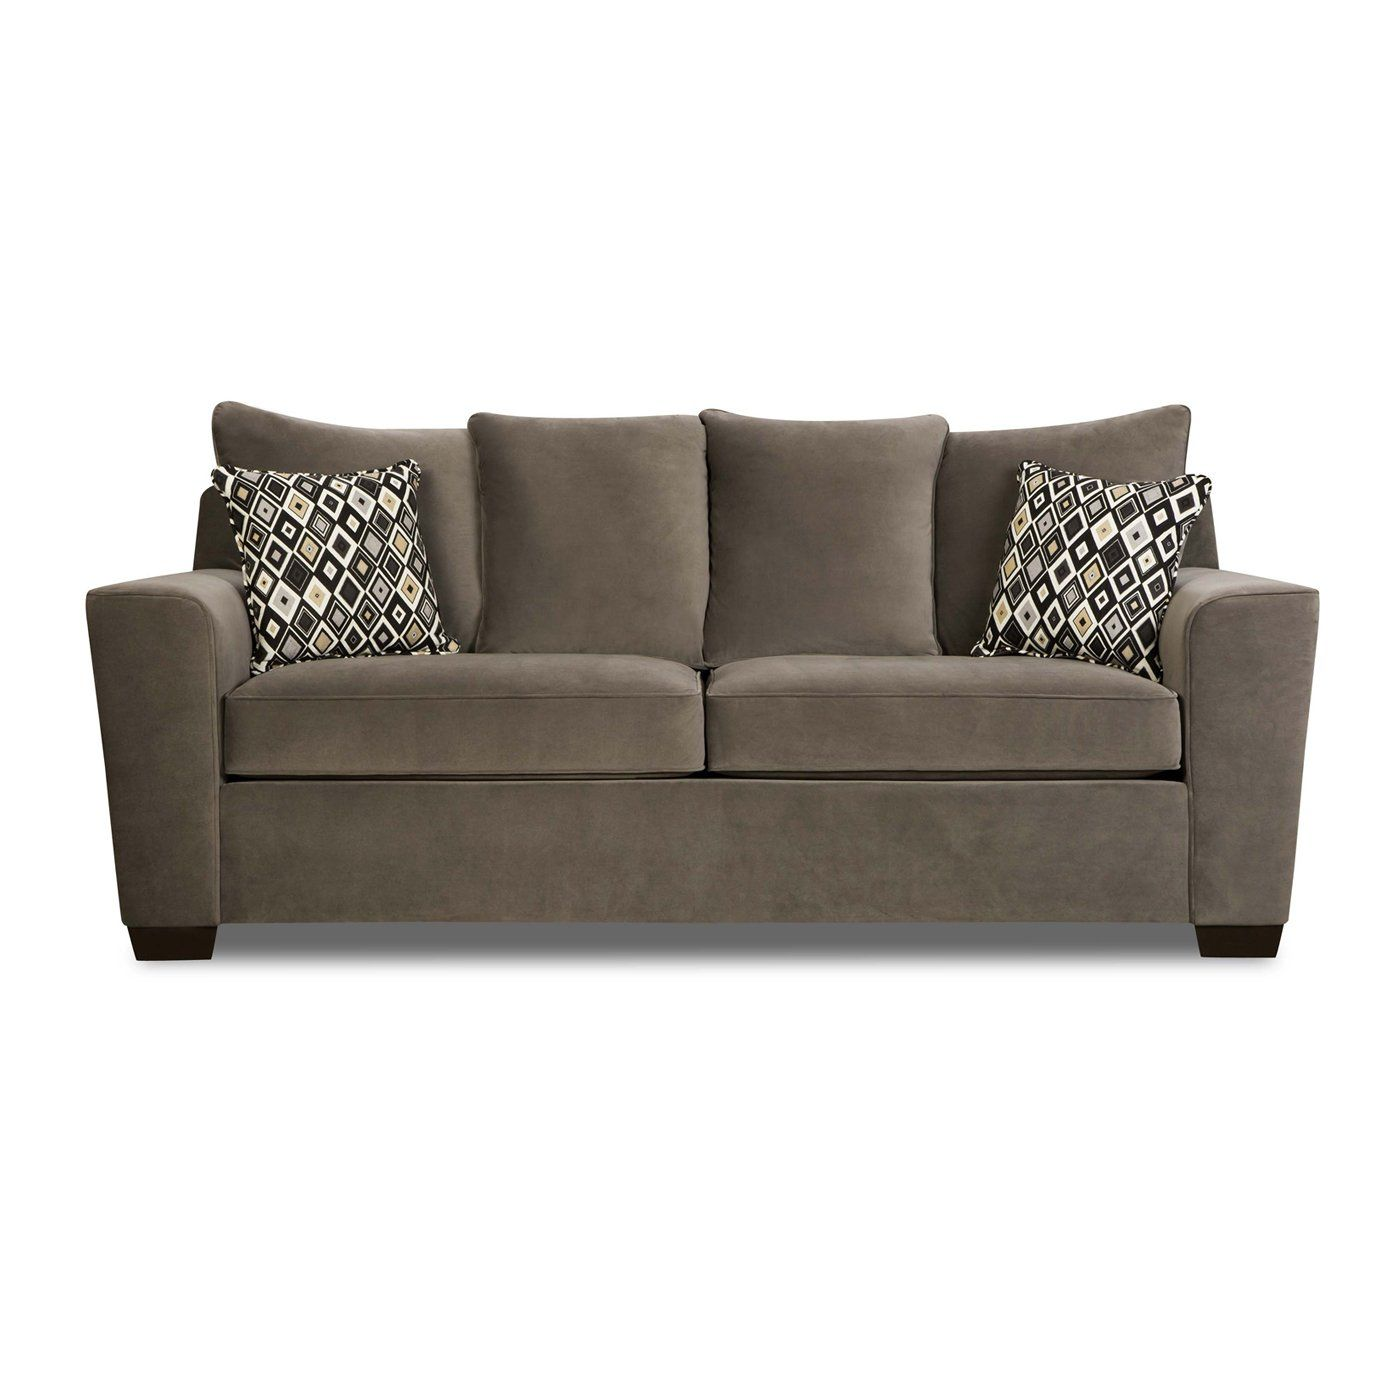 904 Simmons Upholstery 9070 Queen Sleeper Roxanne Gunsmoke Simmons Sleepers Queen Sleeper Home Furniture Showroom With Images Sofa Sofa Bed Sale Best Sleeper Sofa